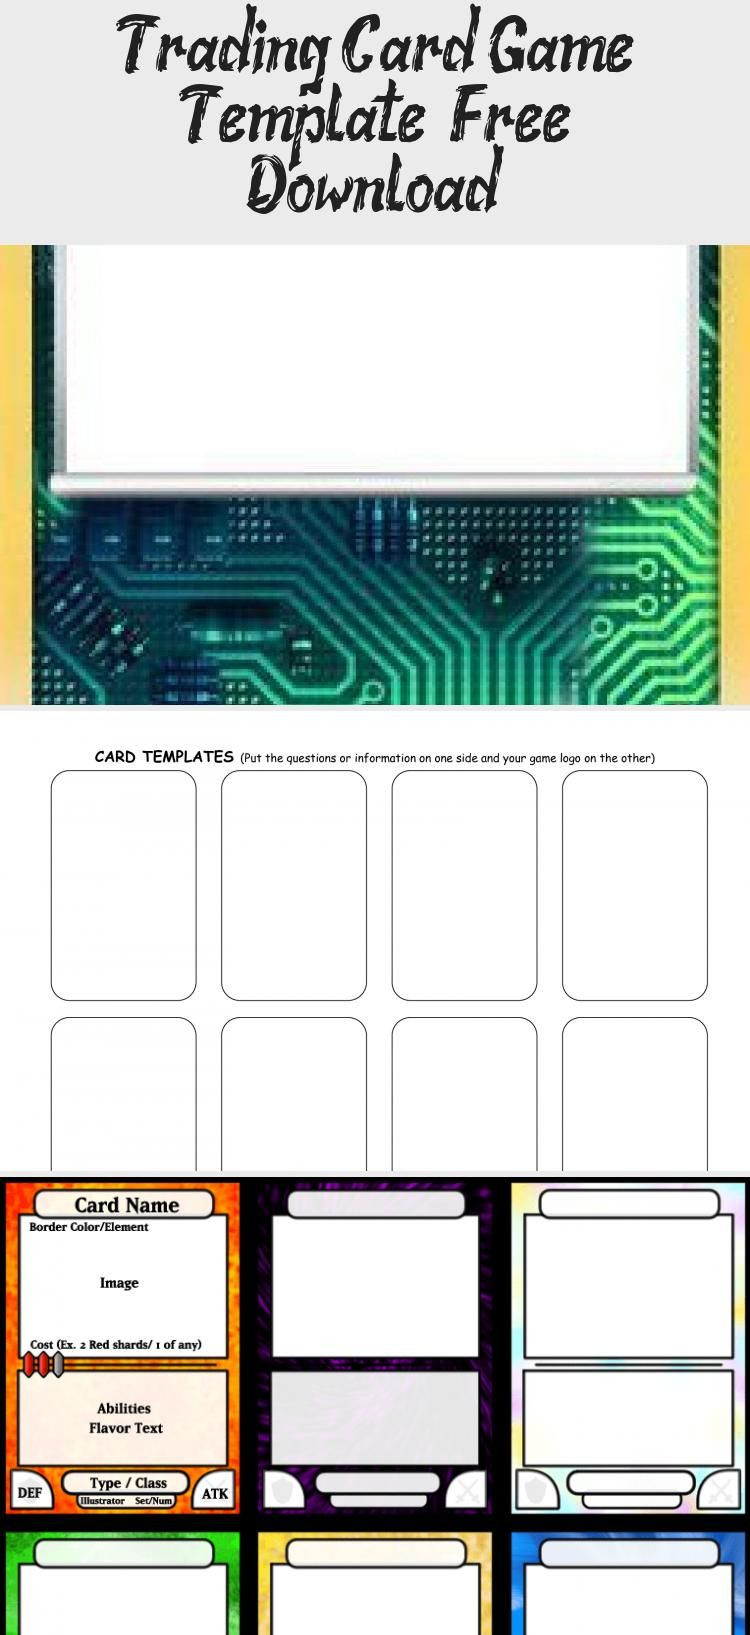 Trading Card Template Free